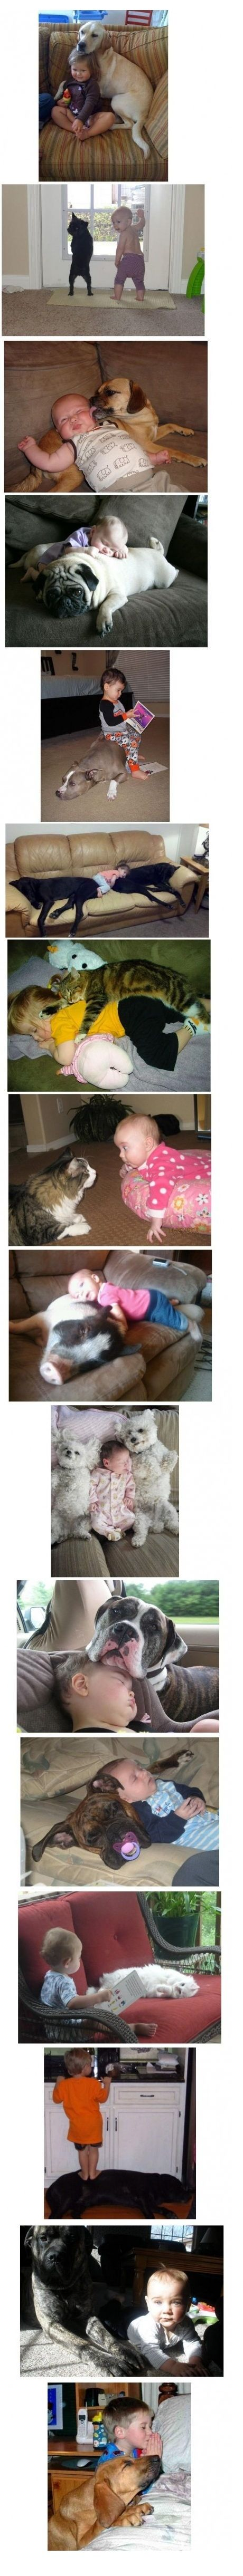 real babies and fur babies...I don't know who's cuter